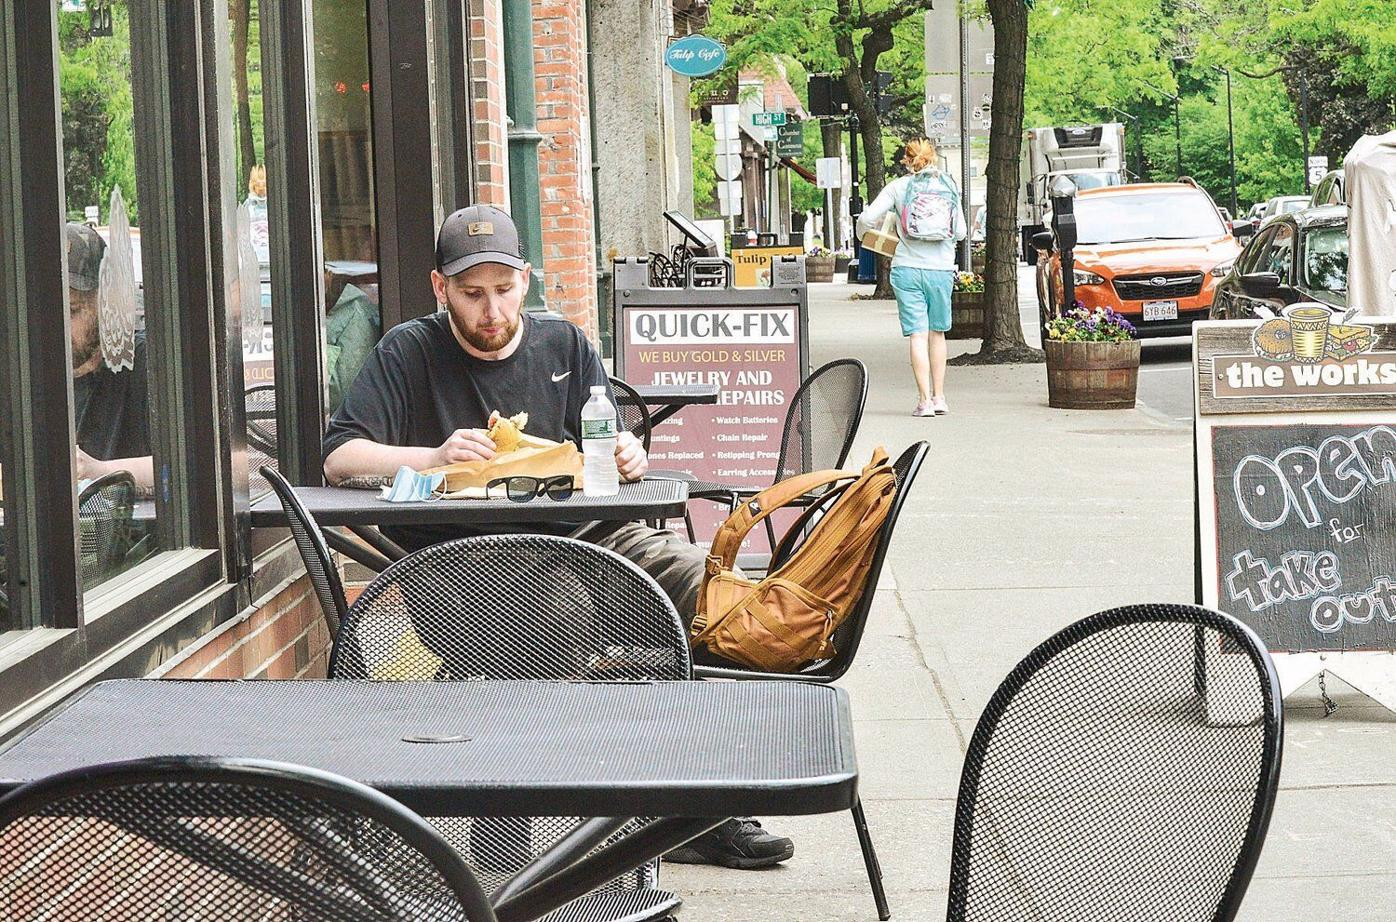 Town approves parklets, permits to help with outdoor business